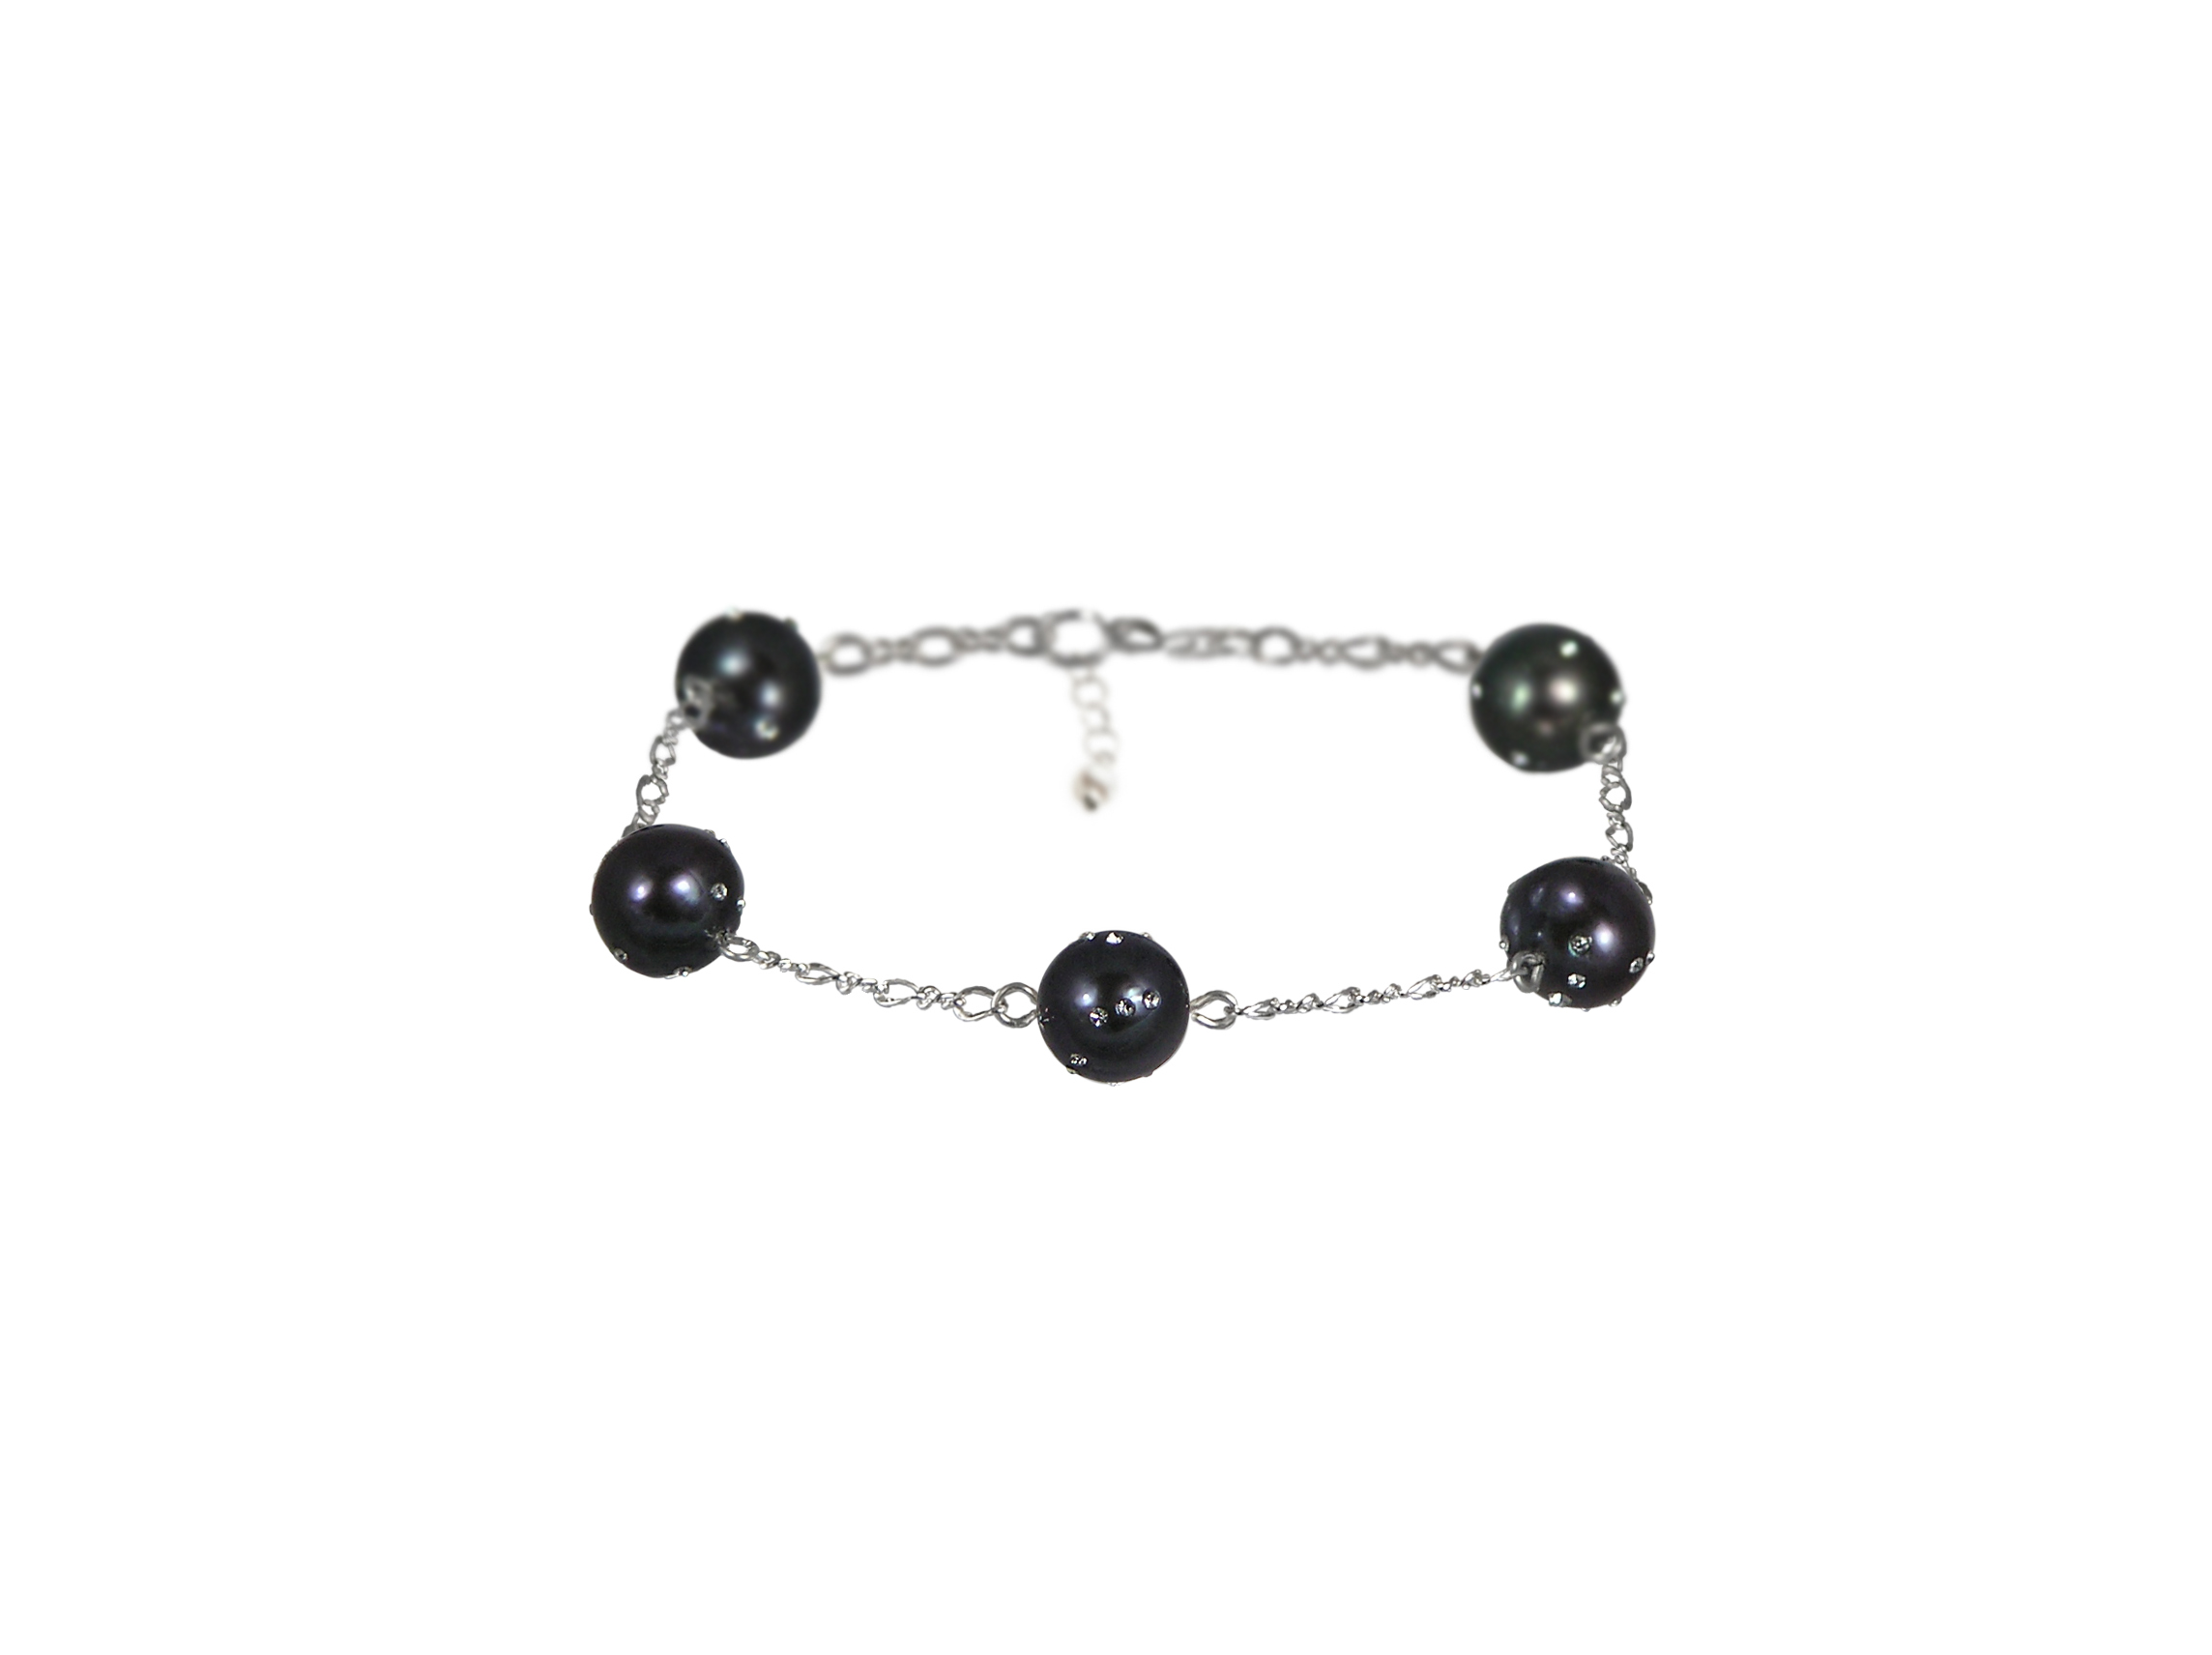 Black freshwater pearl constellation bracelet in Sterling silver.